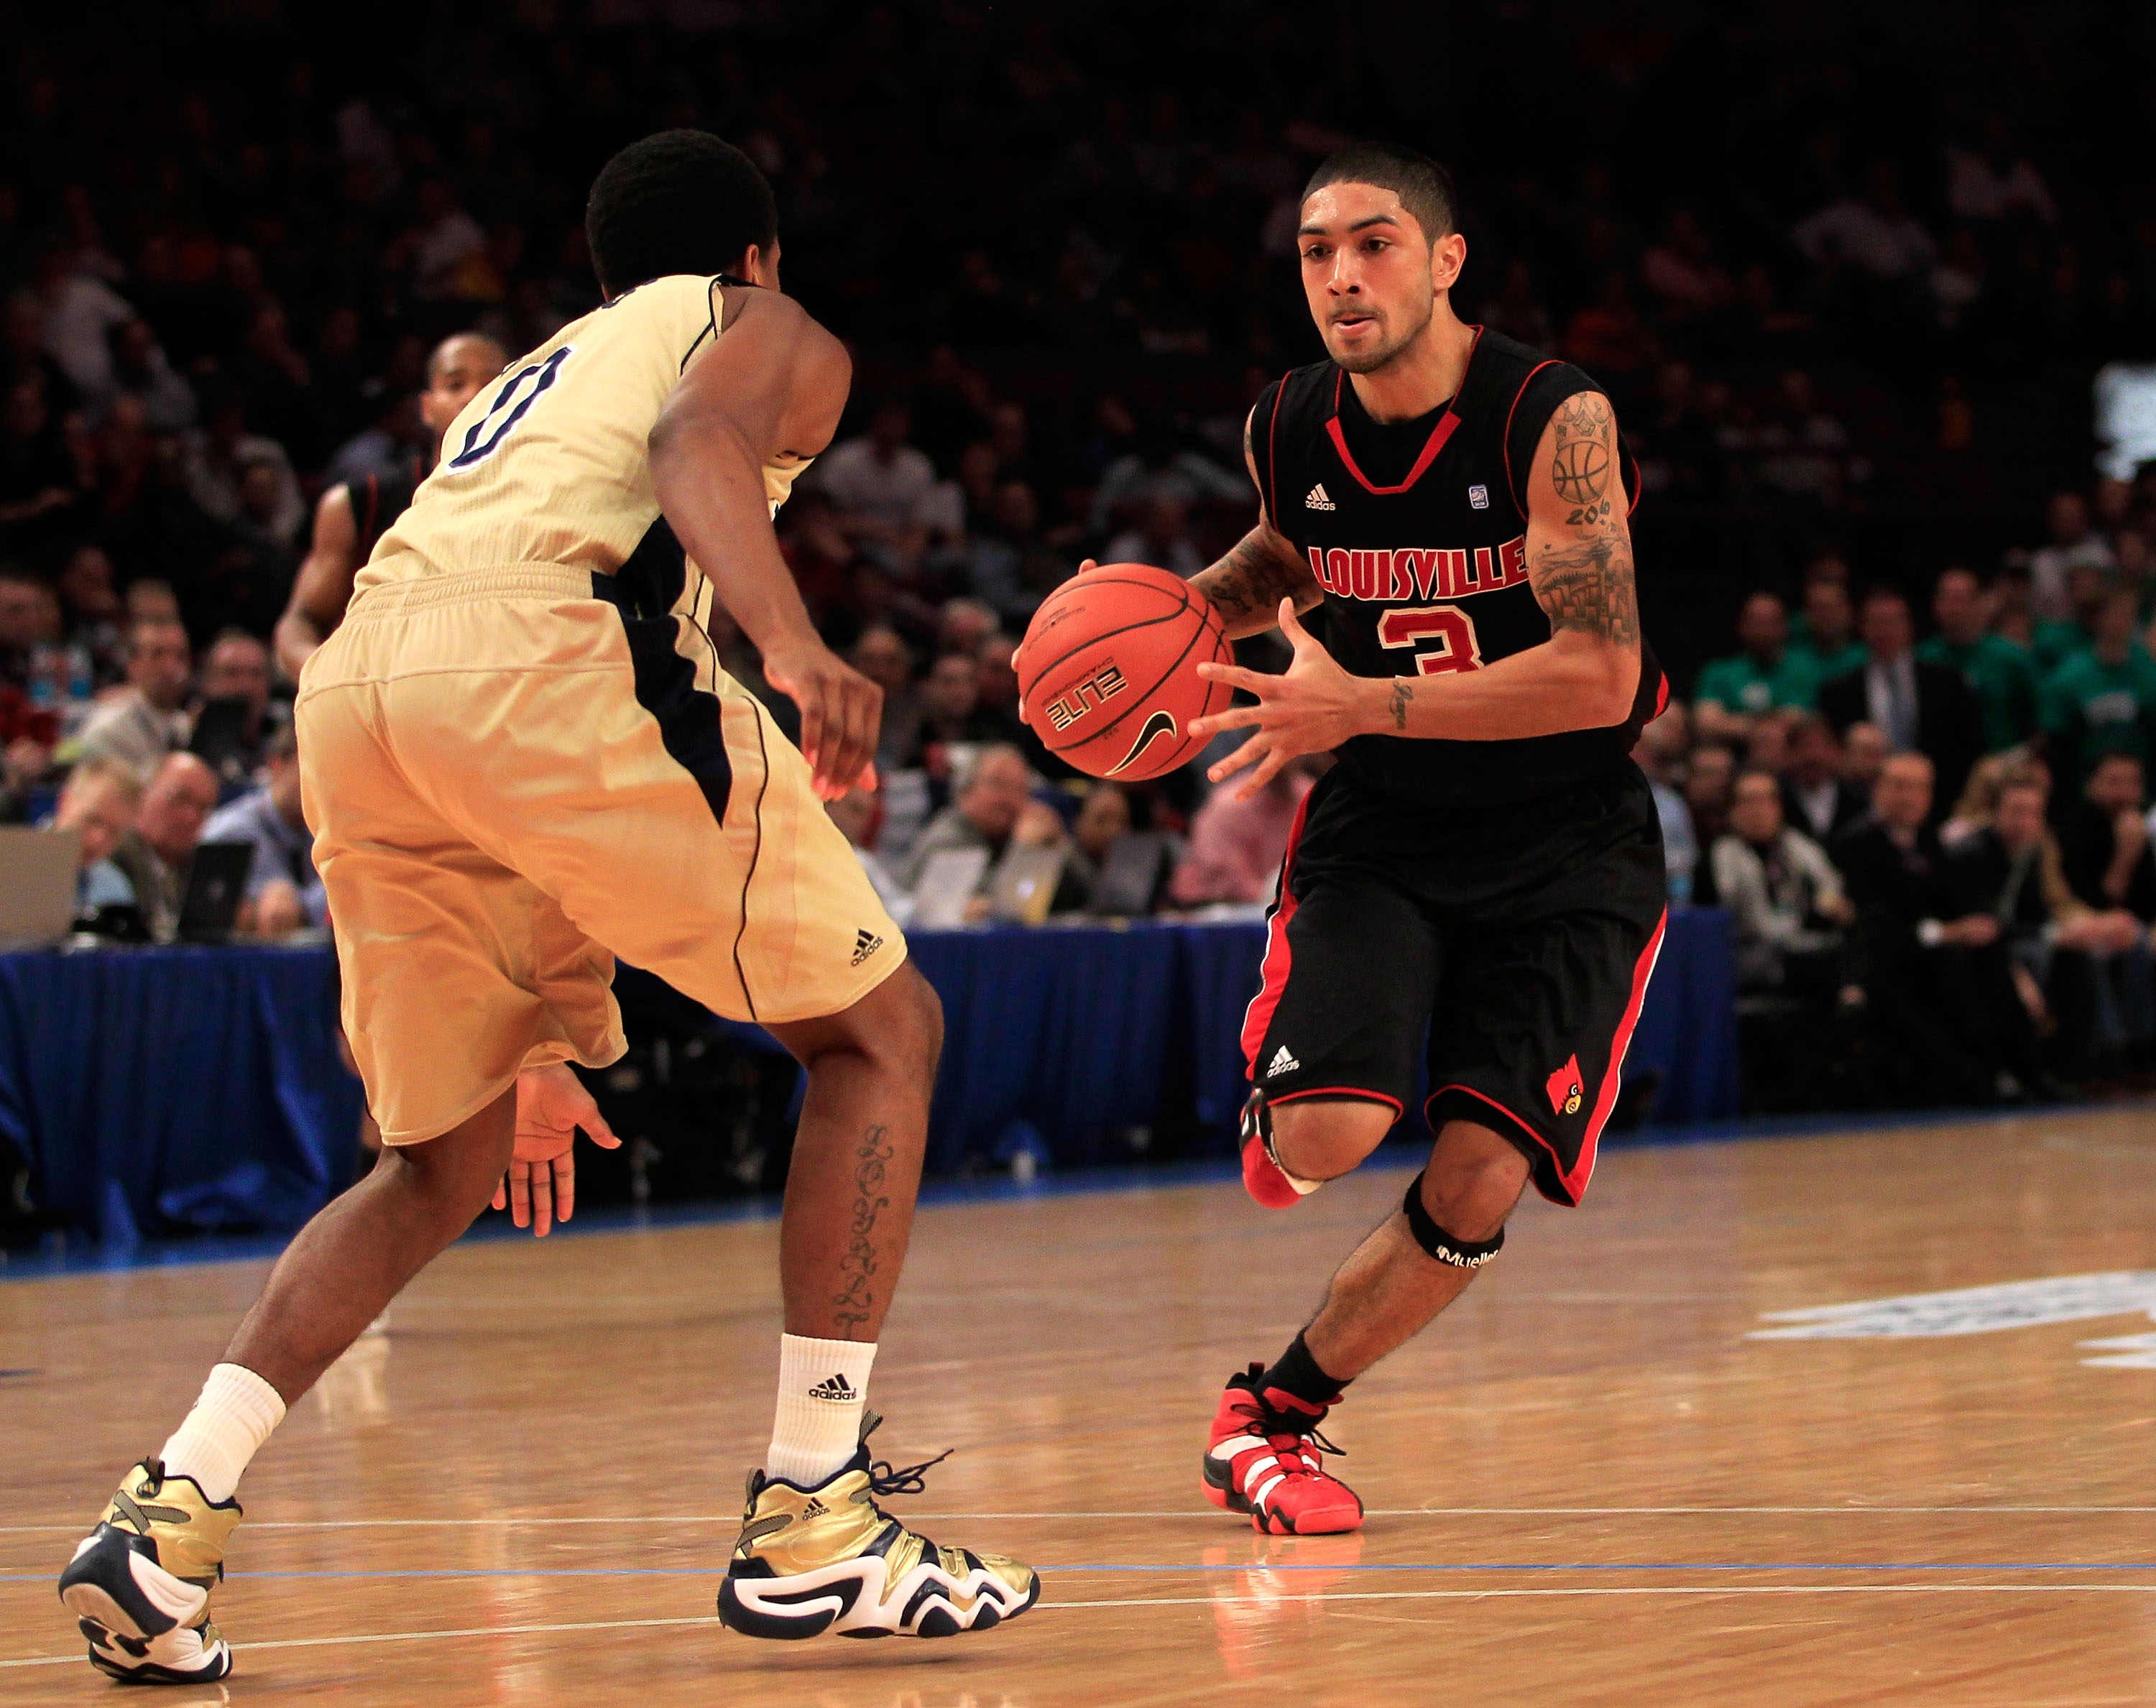 NEW YORK, NY - MARCH 11: Peyton Siva #3 of the Louisville Cardinals brings the ball up court against Eric Atkins #0 of the Notre Dame Fighting Irish  during the semifinals of the 2011 Big East Men's Basketball Tournament presented by American Eagle Outfit